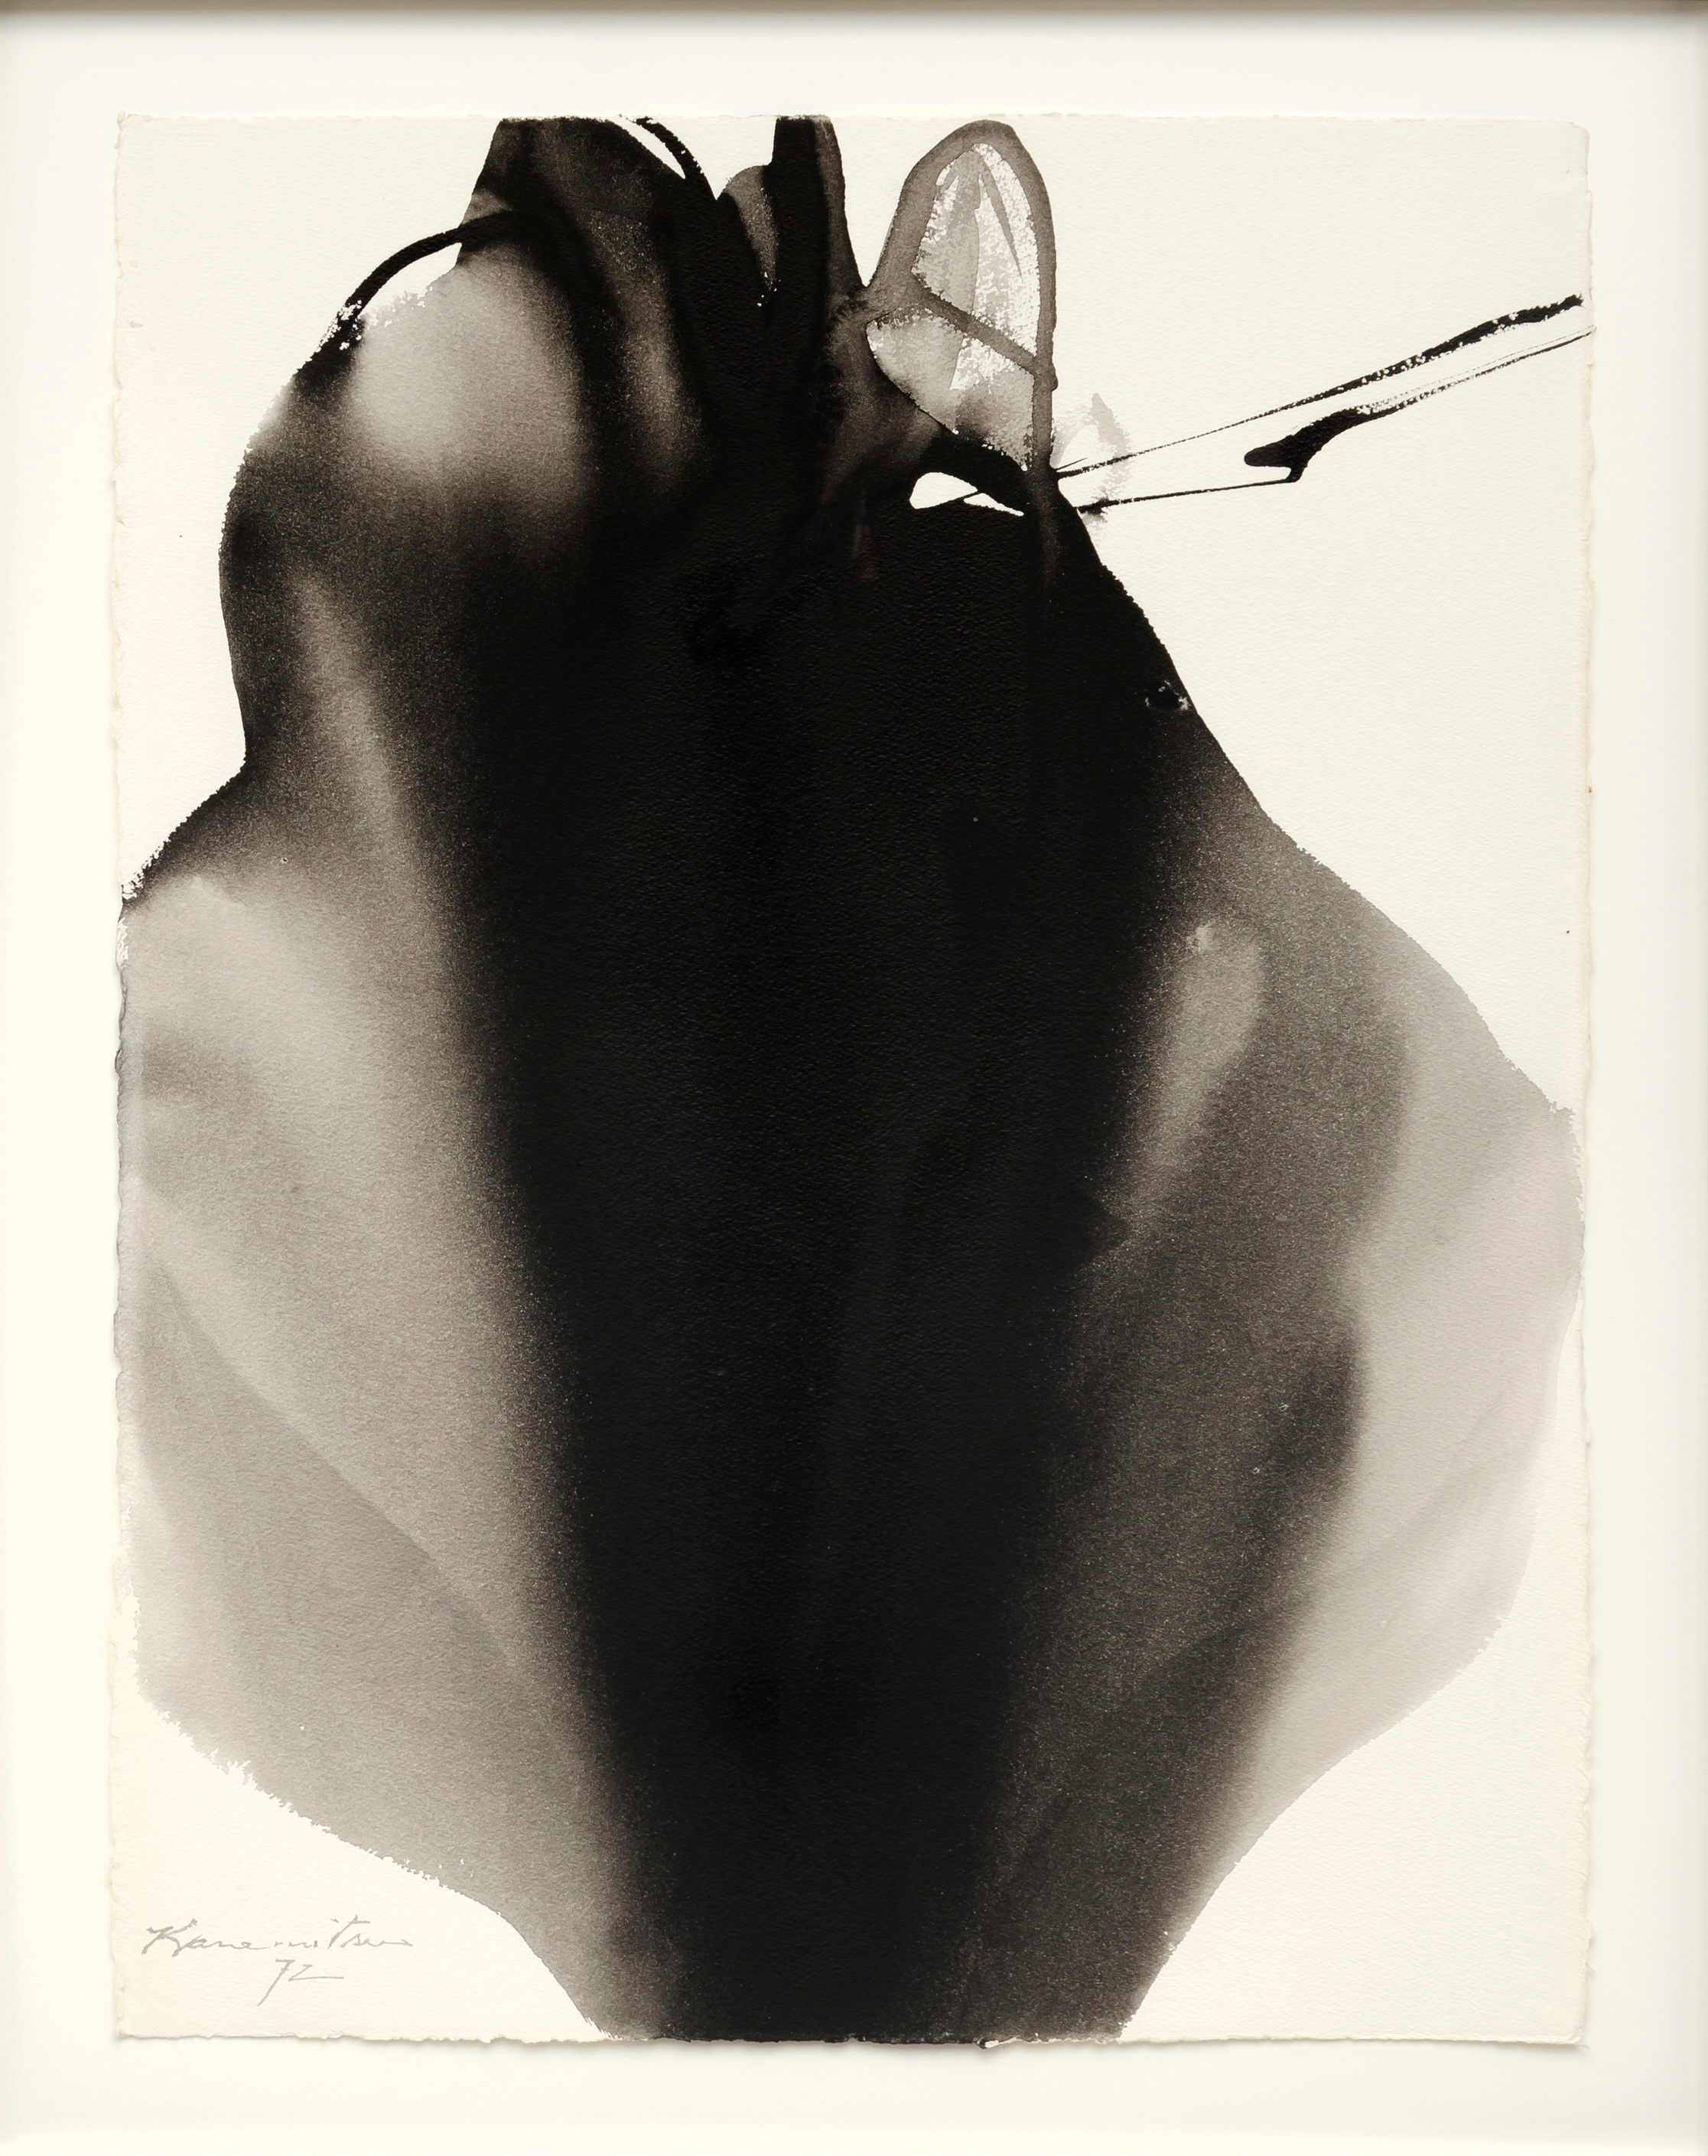 Untitled #35 , 1972 sumi on paper 35 x 27.5 inches; 88.9 x 69.8 centimeter